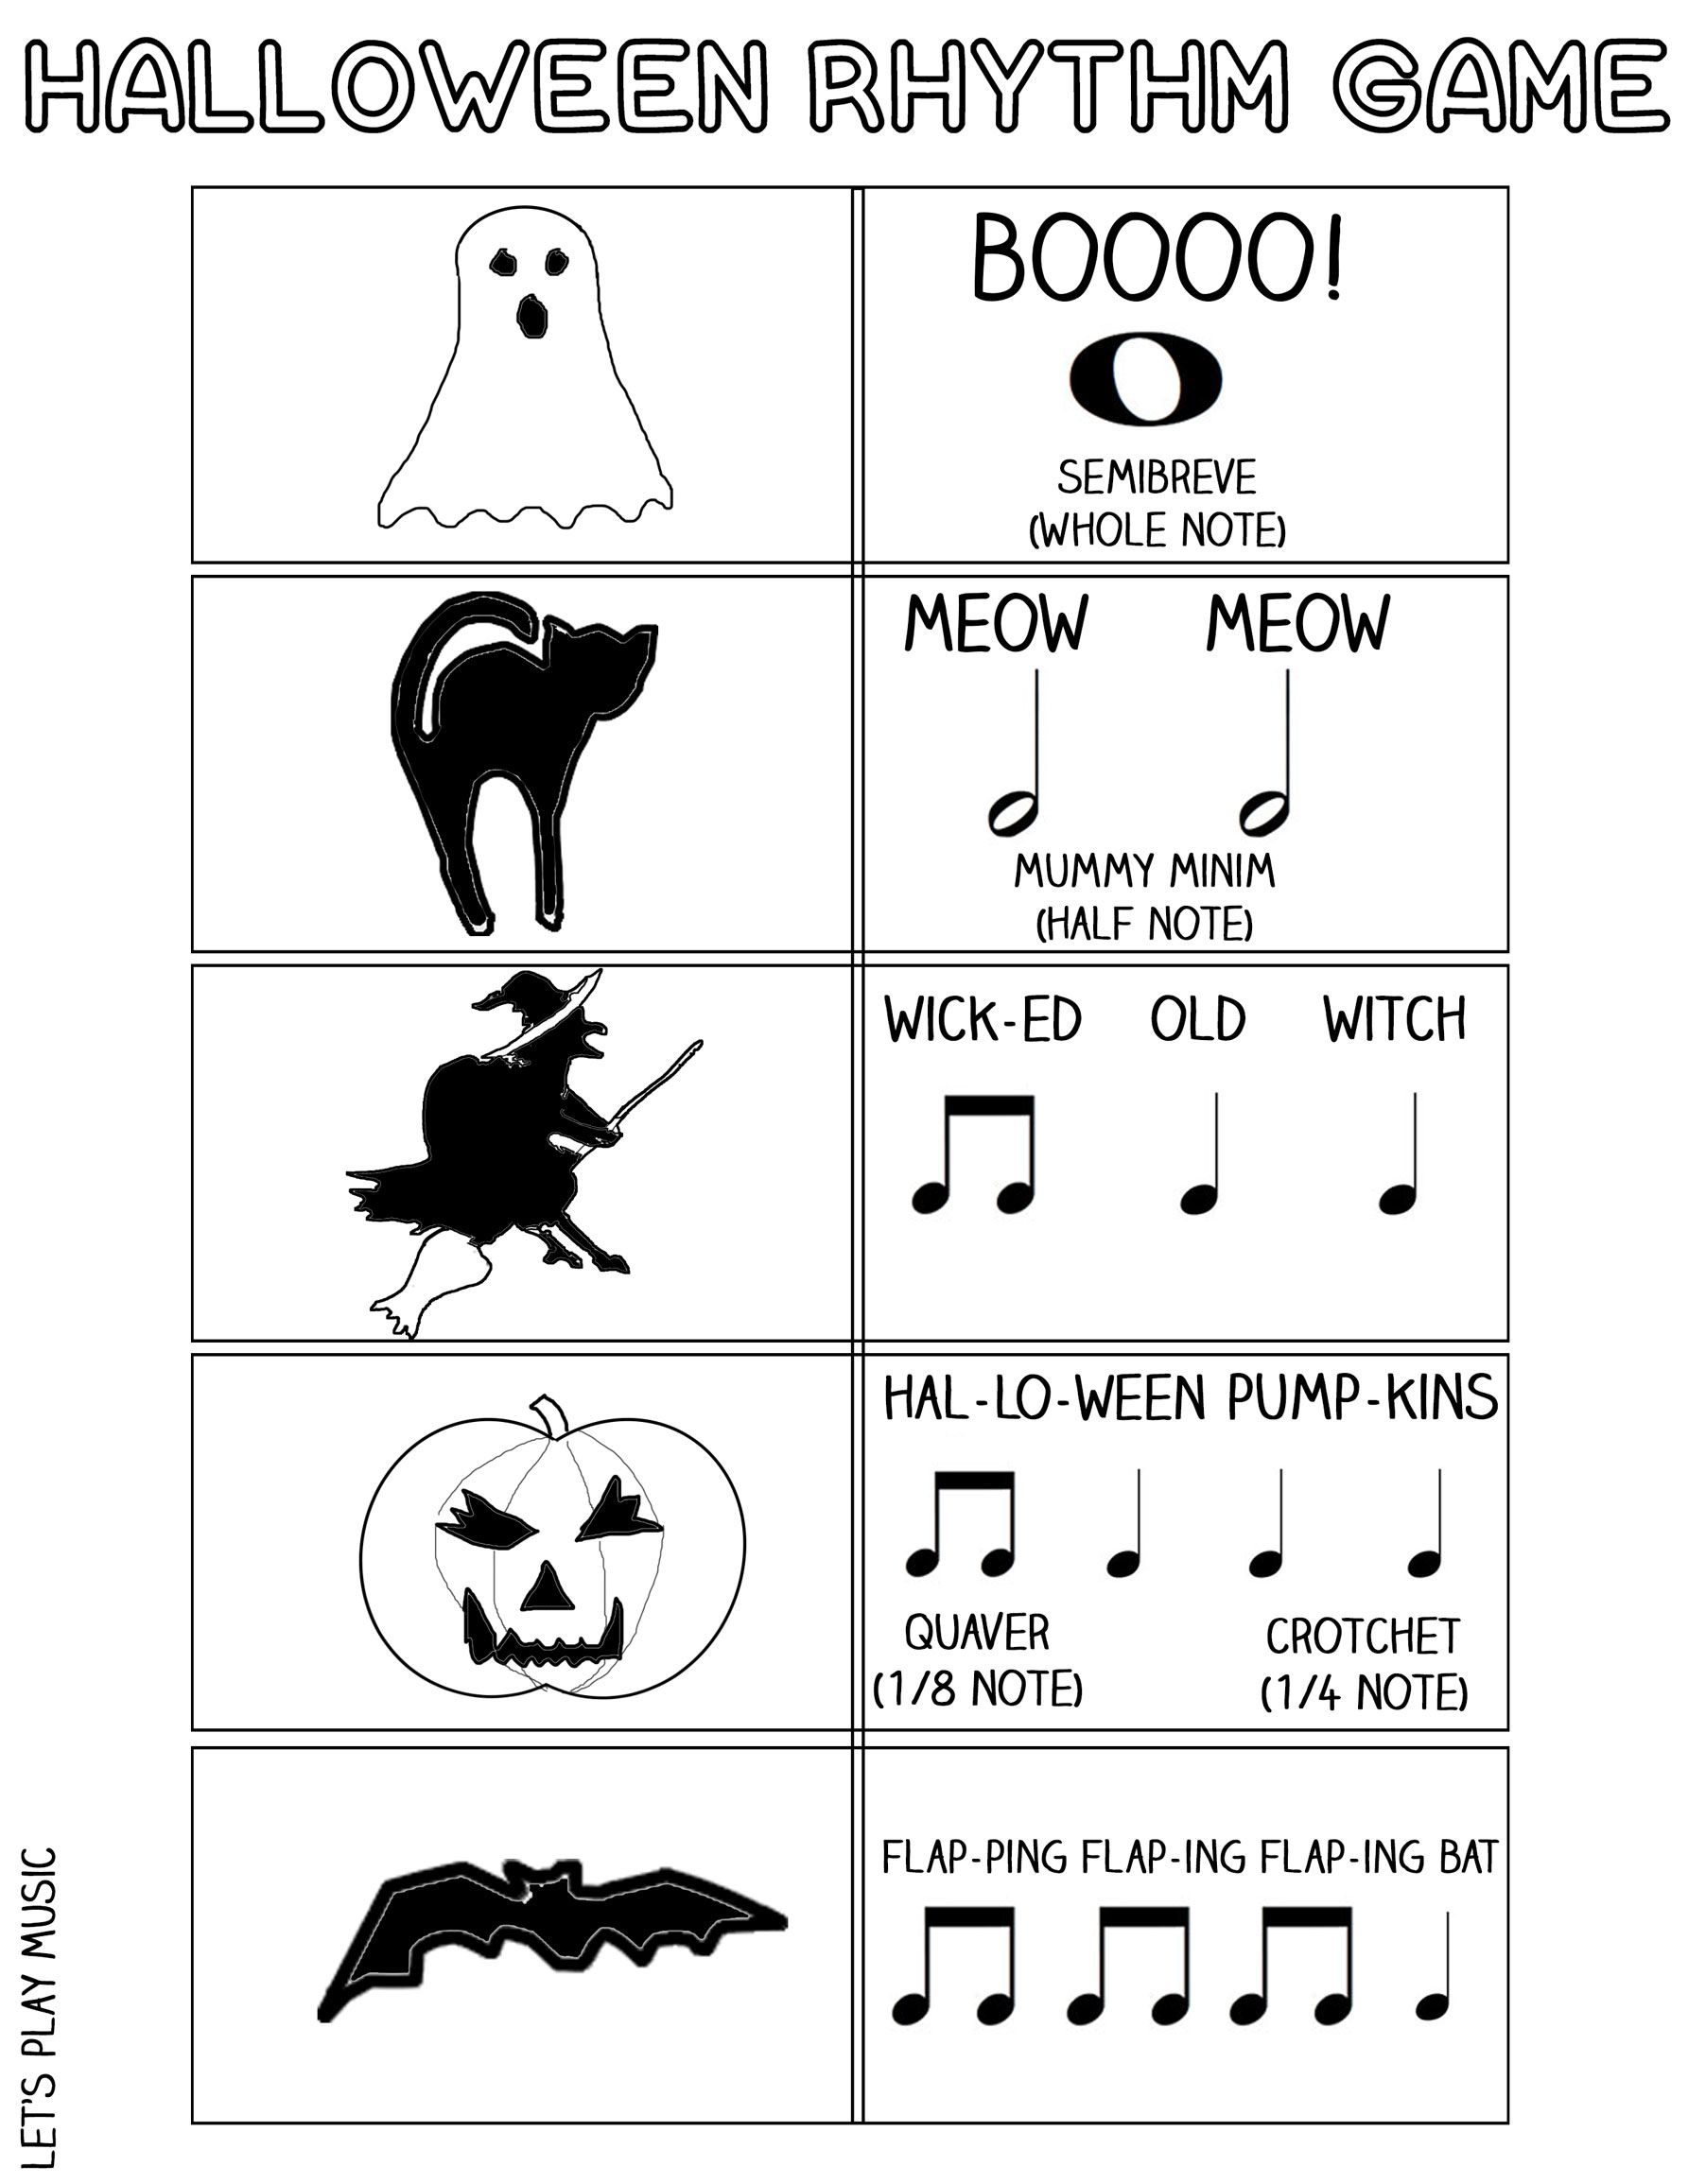 The Scary Witch Halloween Rhythm Game